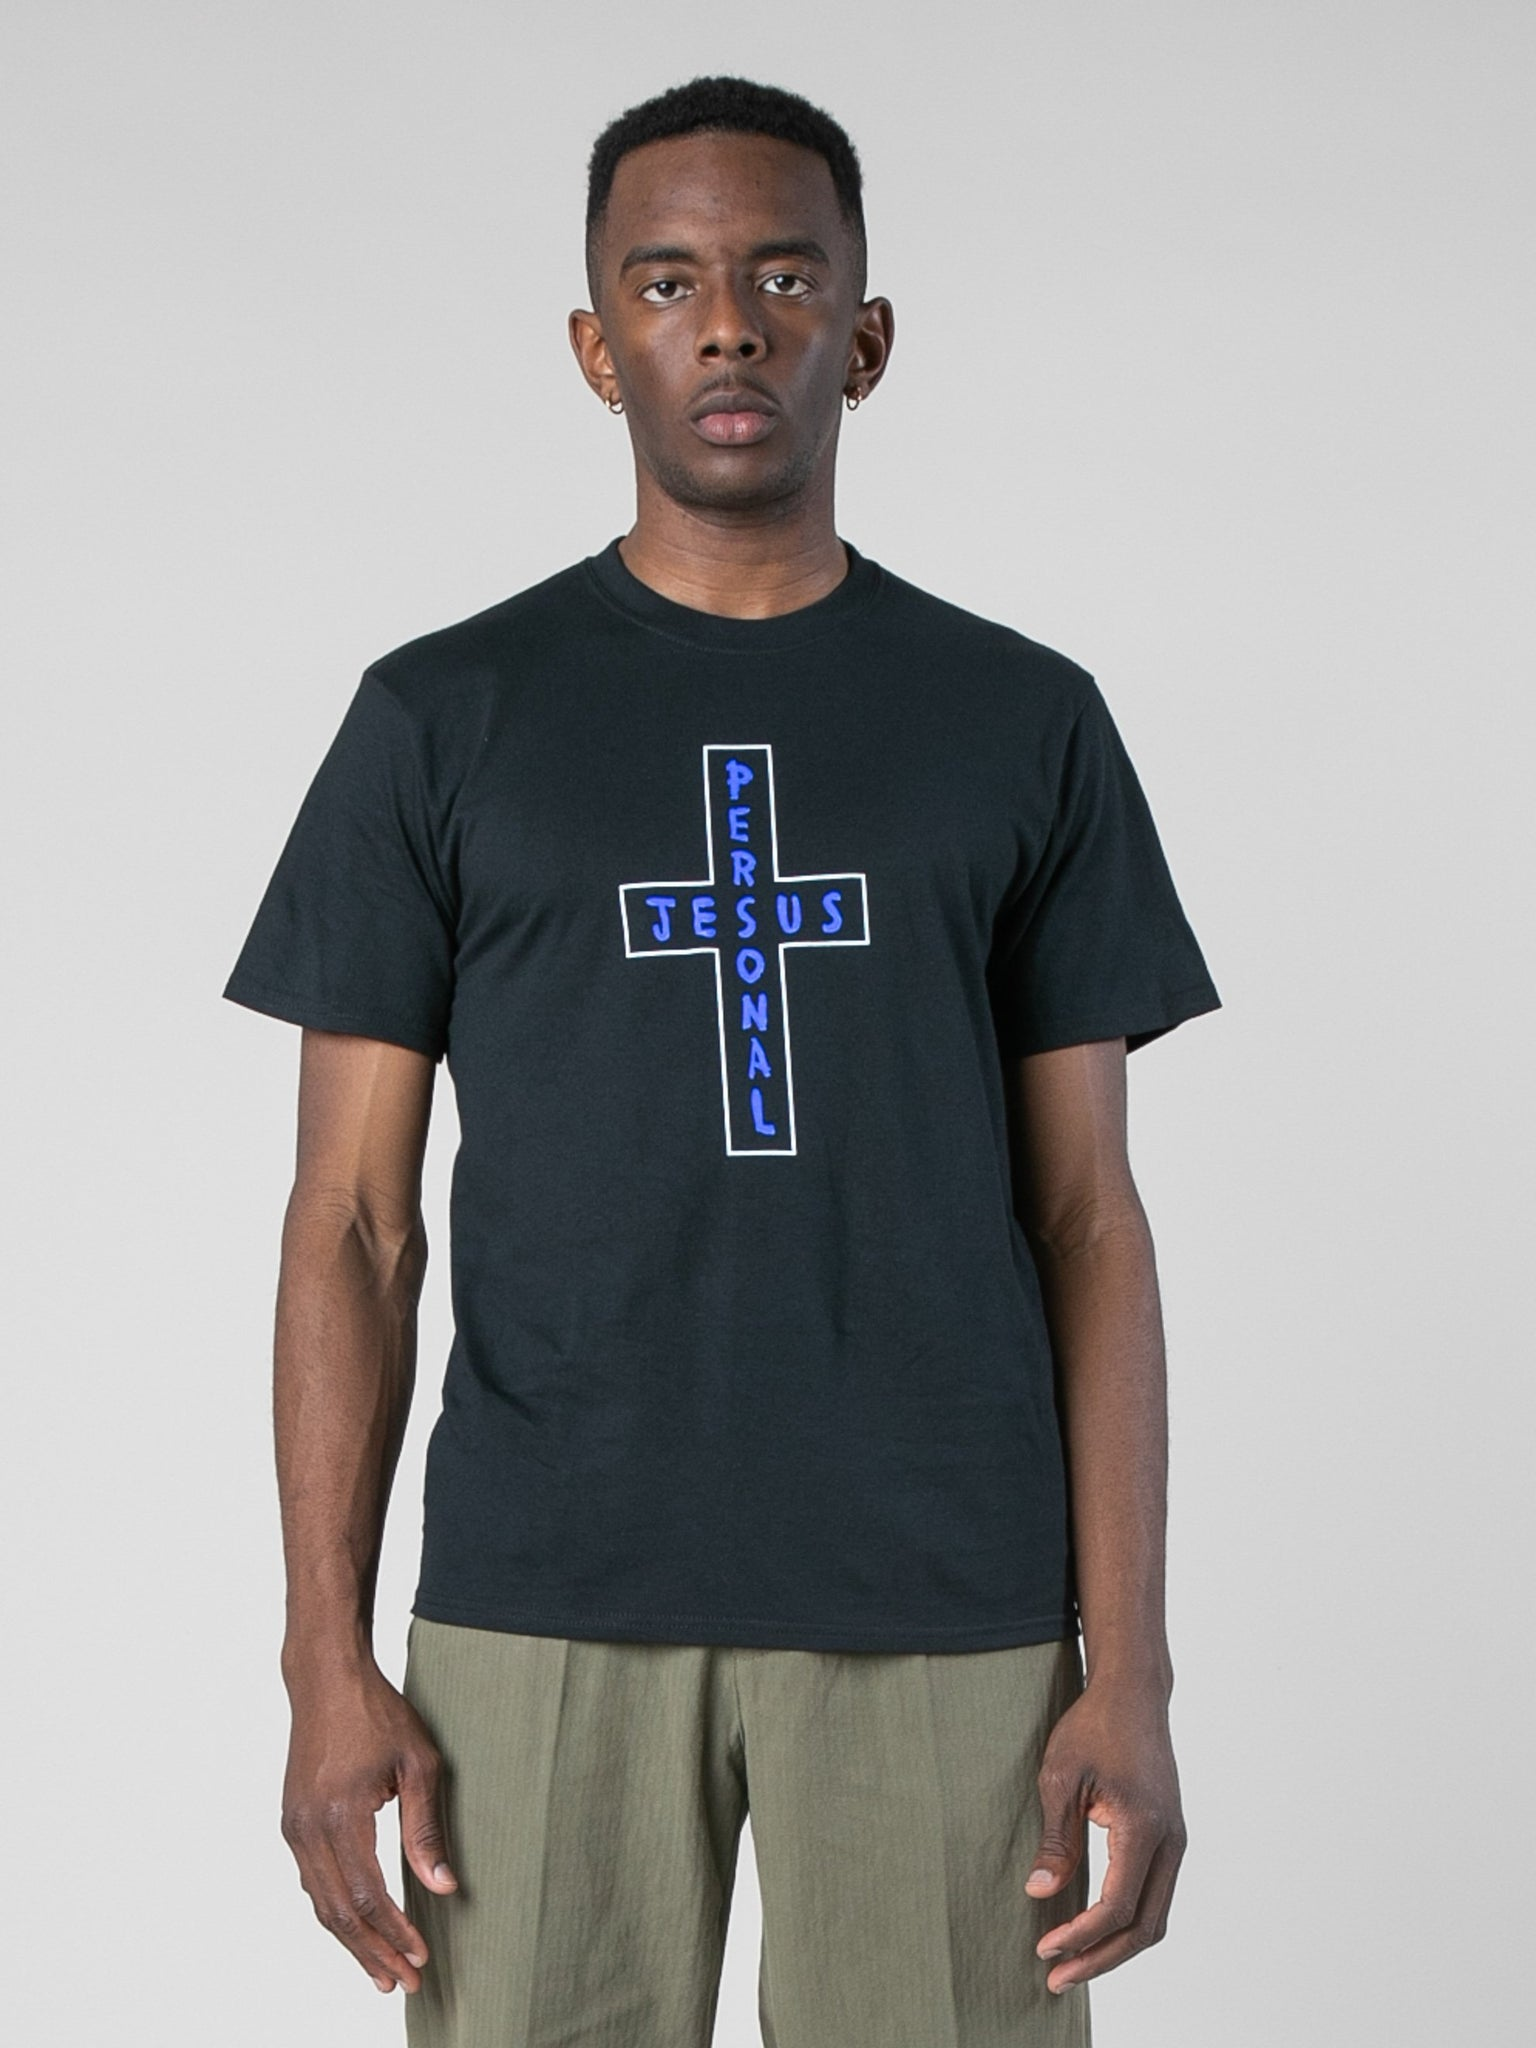 personal-jesus-t-shirt-2